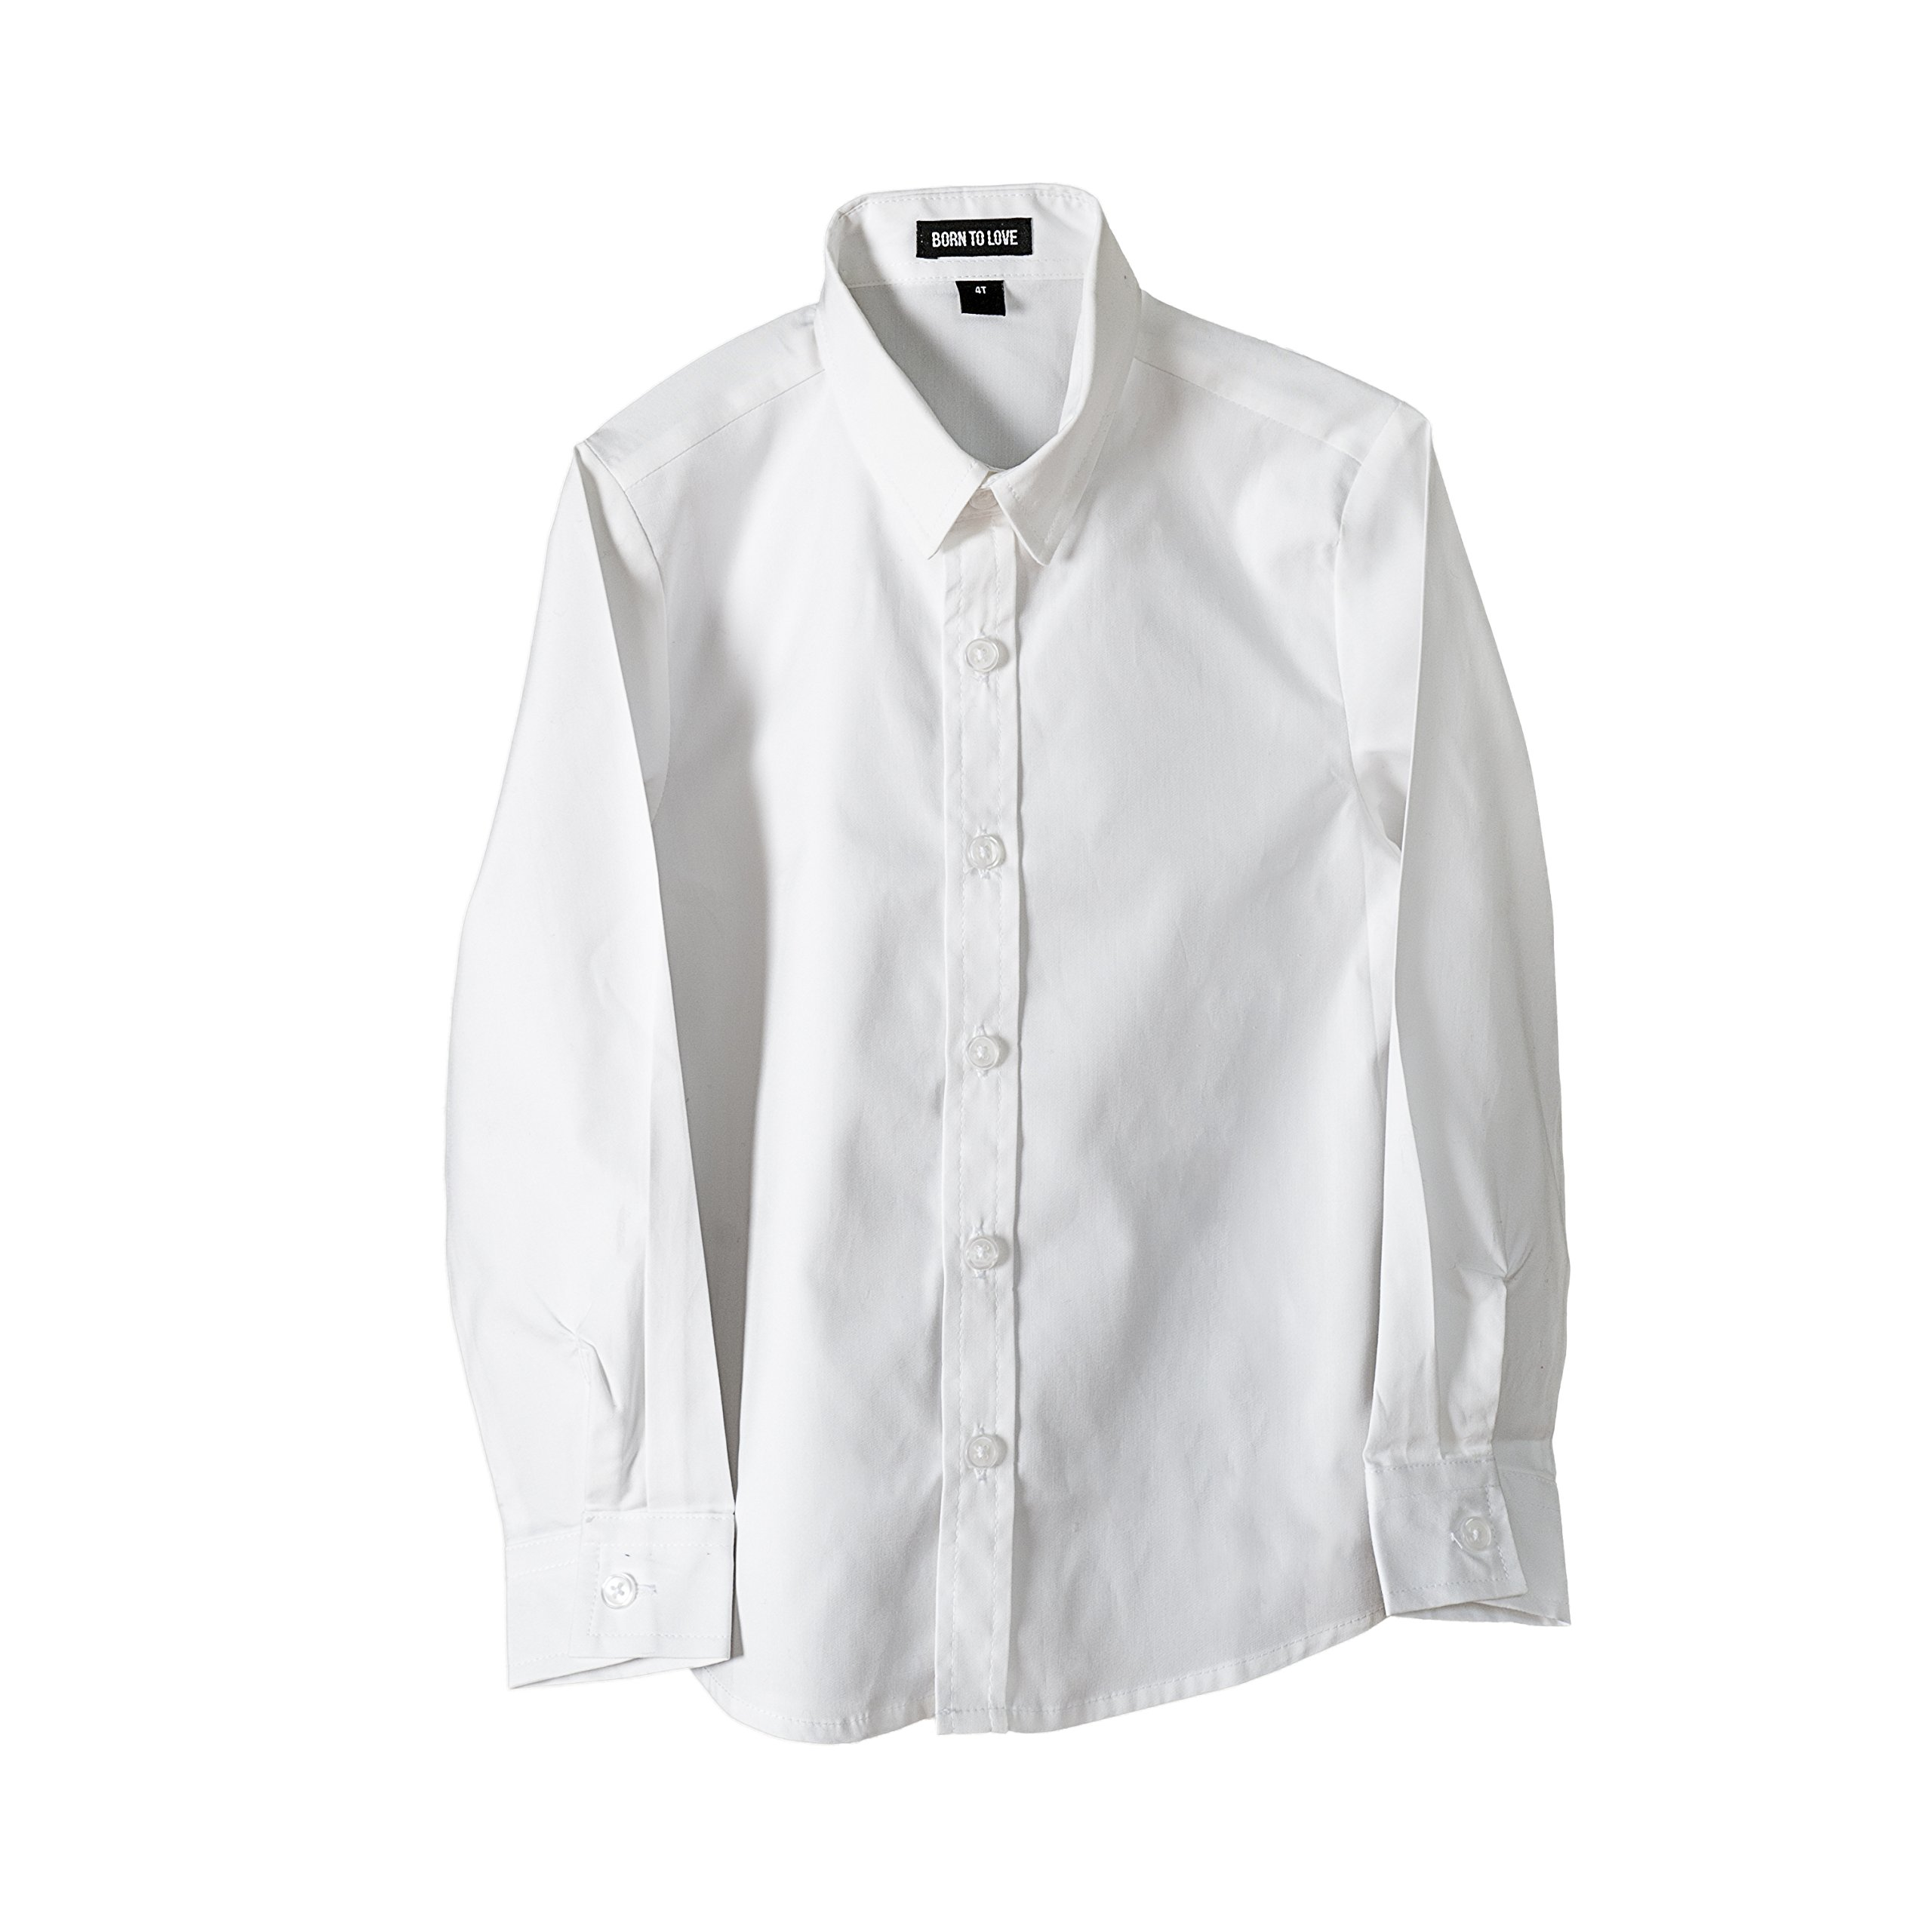 Born to Love - Wedding Baptism Birthday White Button-Up Shirt - Infant, Toddler & Boys 2T by Born to Love (Image #2)